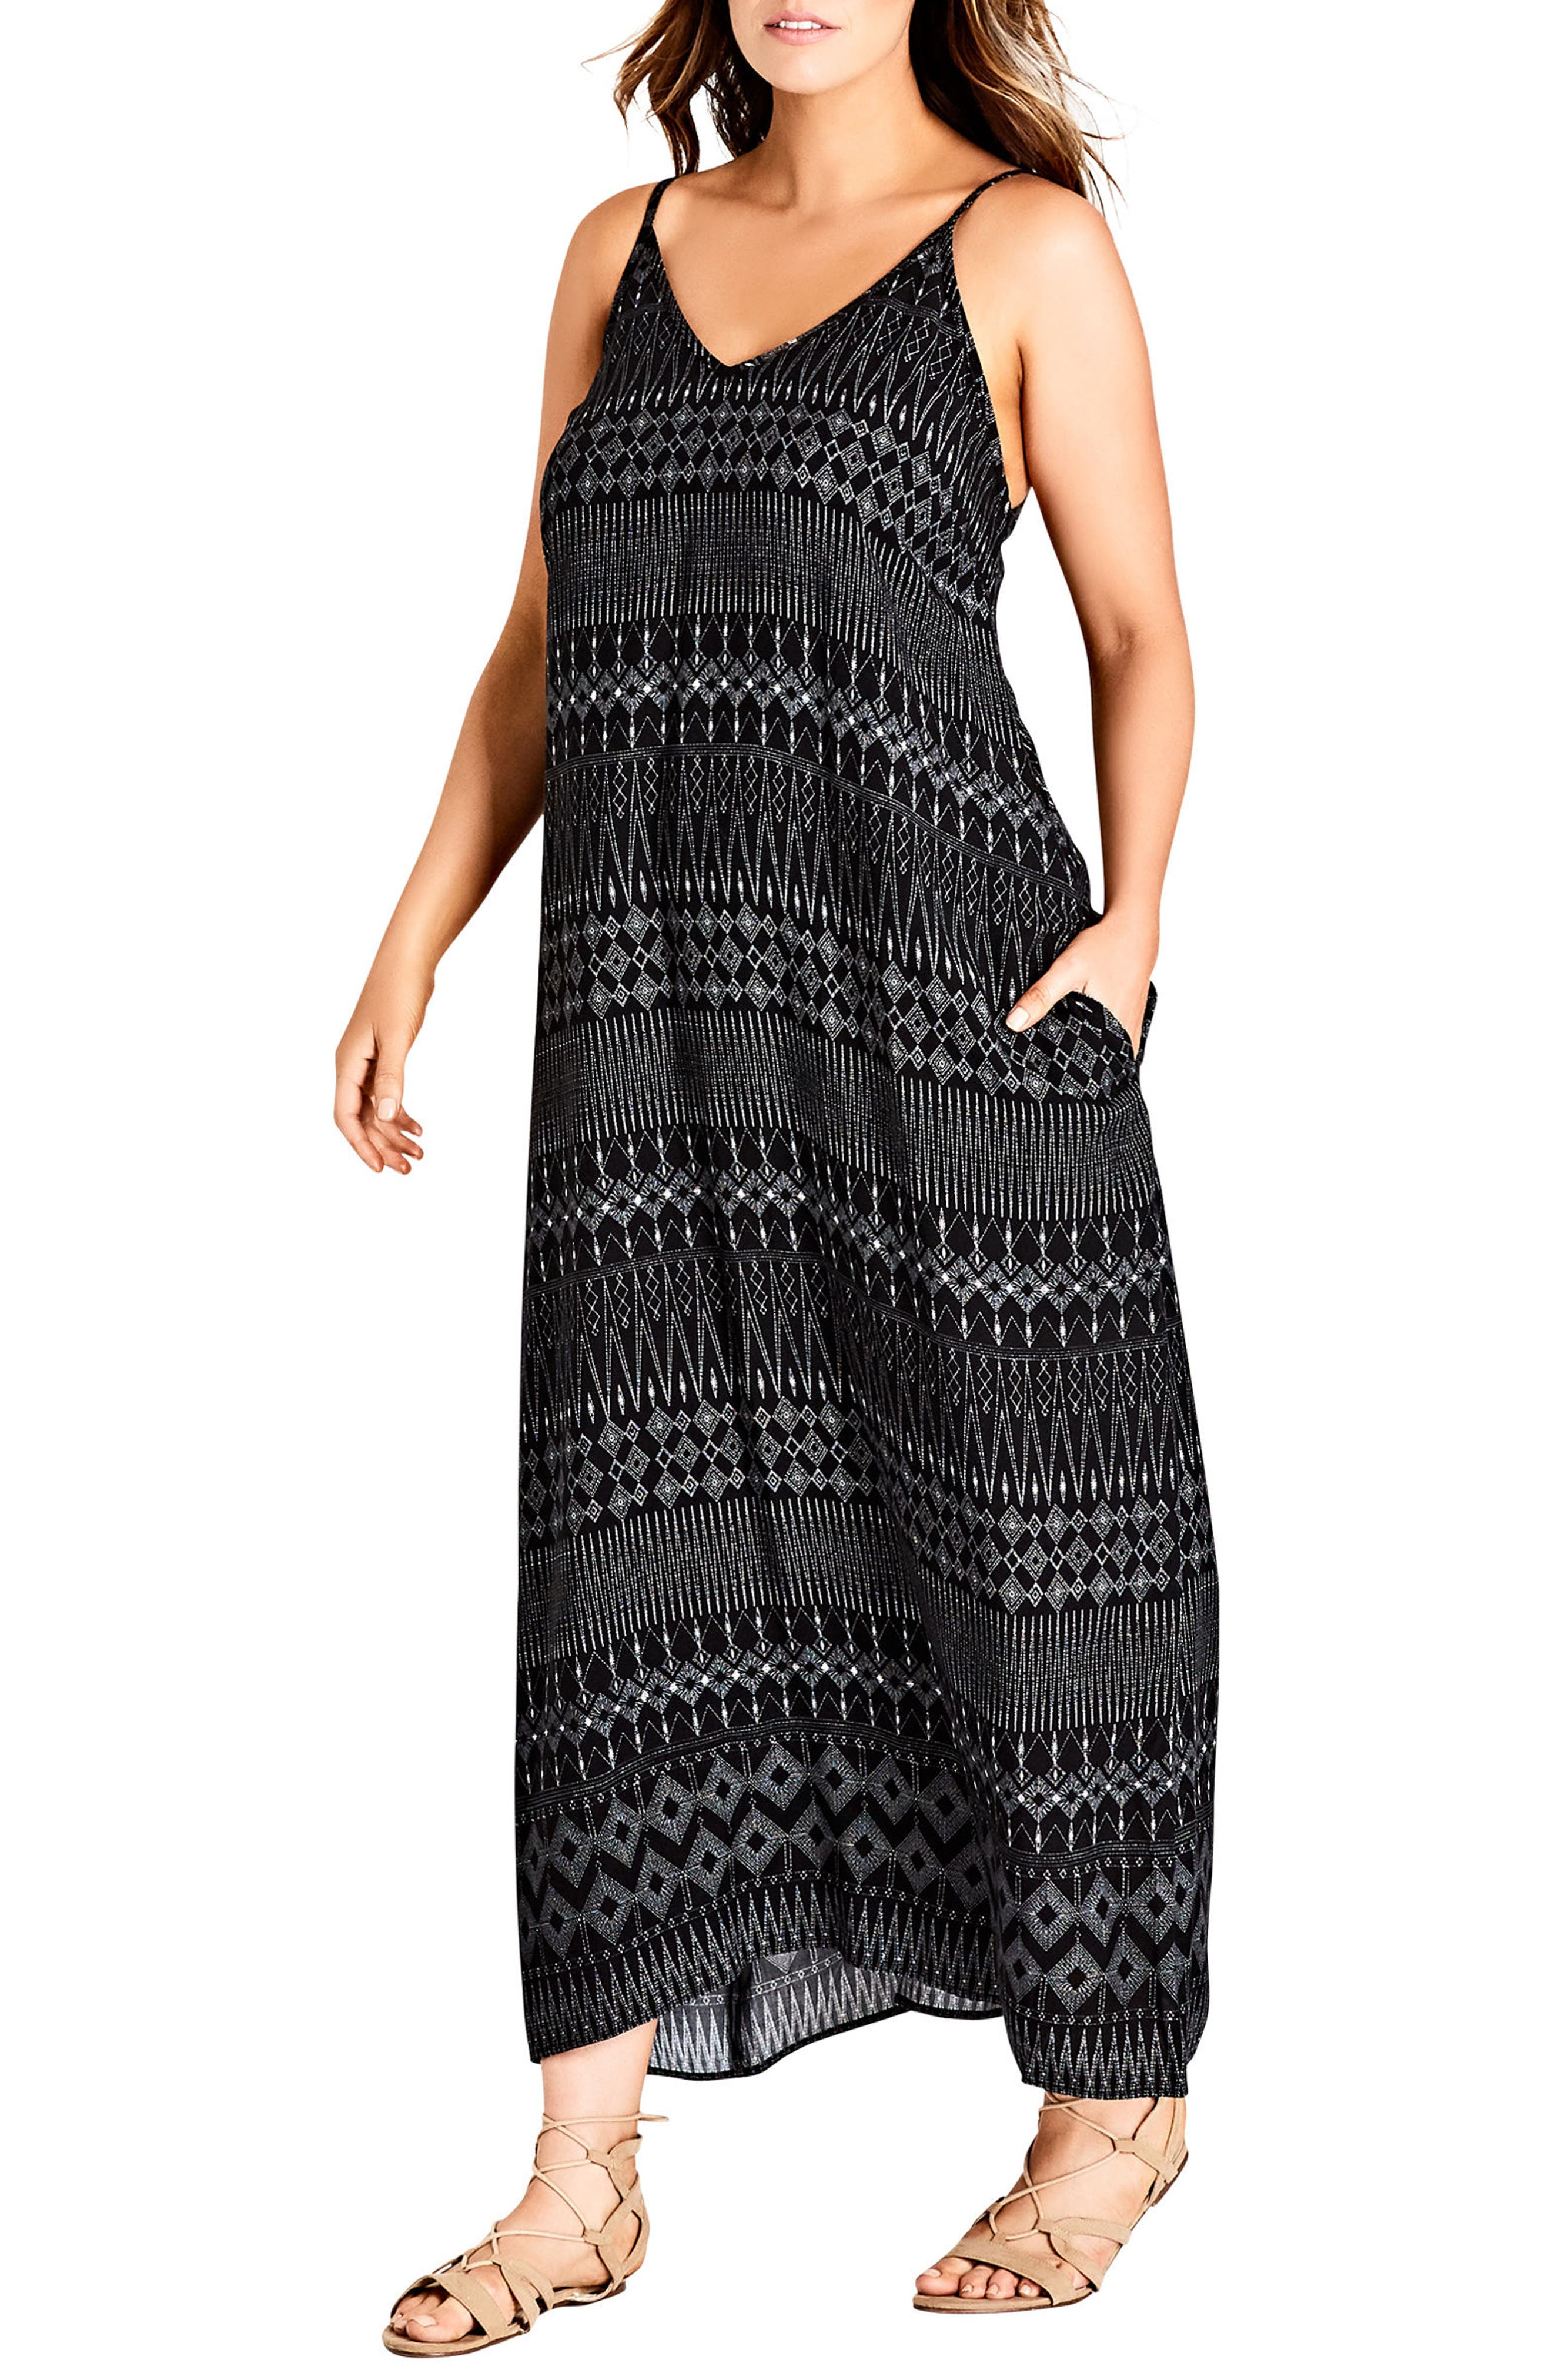 Safari Maxi Dress,                             Main thumbnail 1, color,                             BLACK PRINT